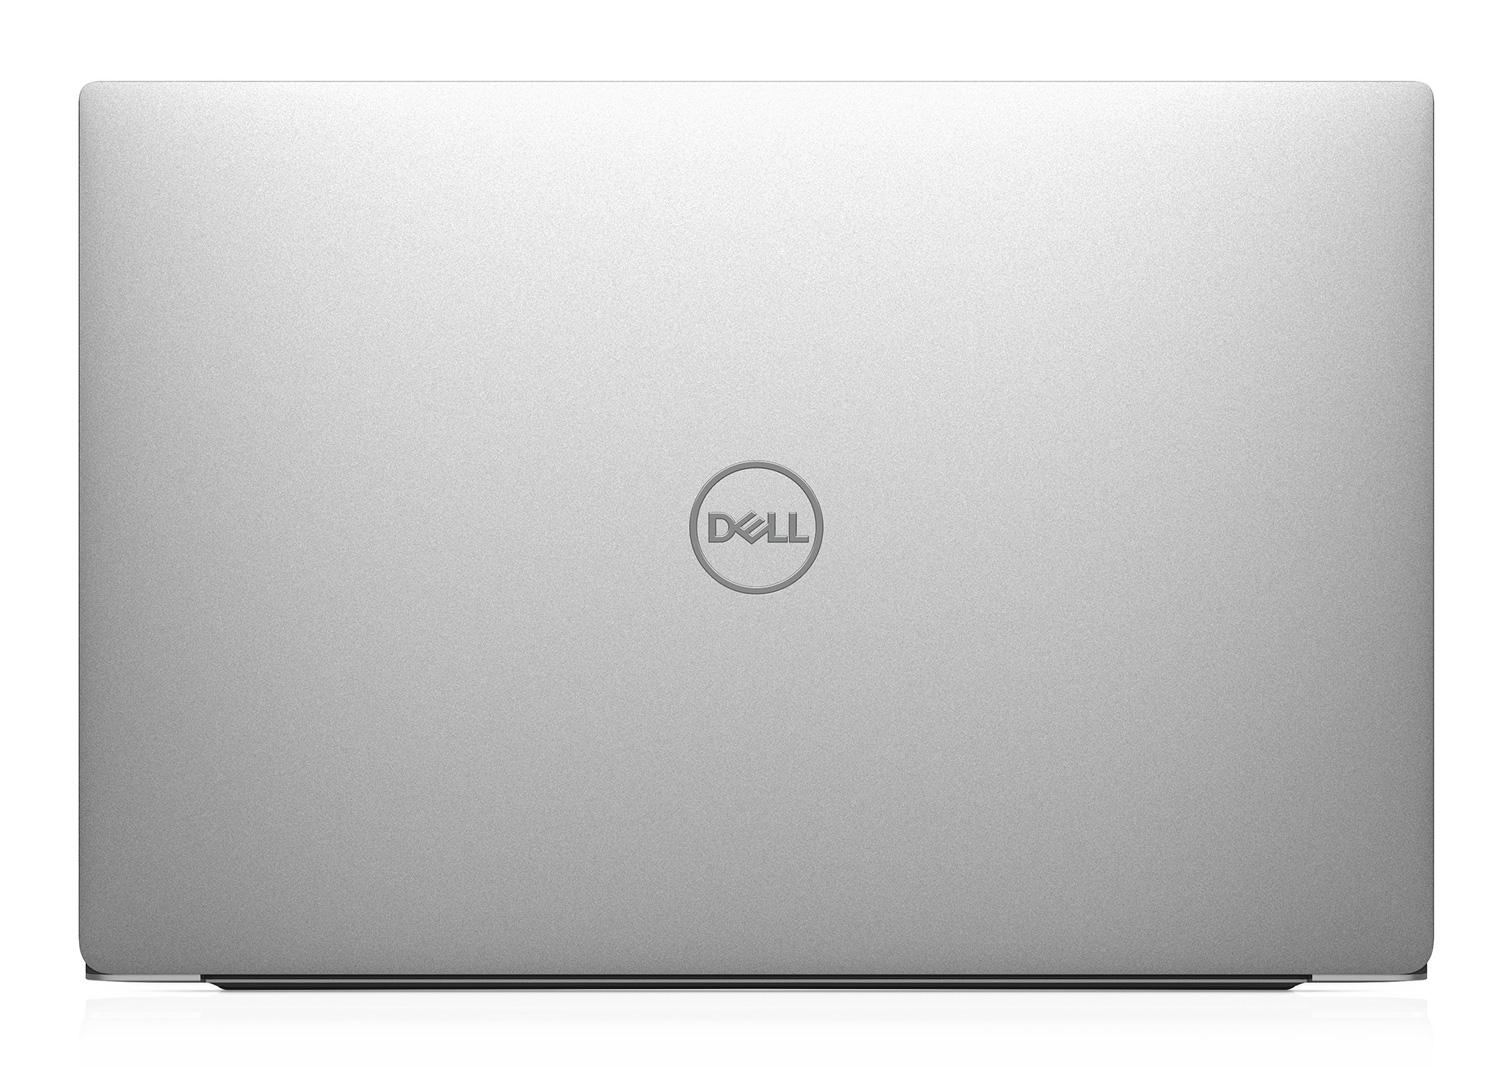 Ordinateur portable Dell XPS 15 7590 (1680) - OLED 4K, GTX 1650, SSD 1 To - photo 5